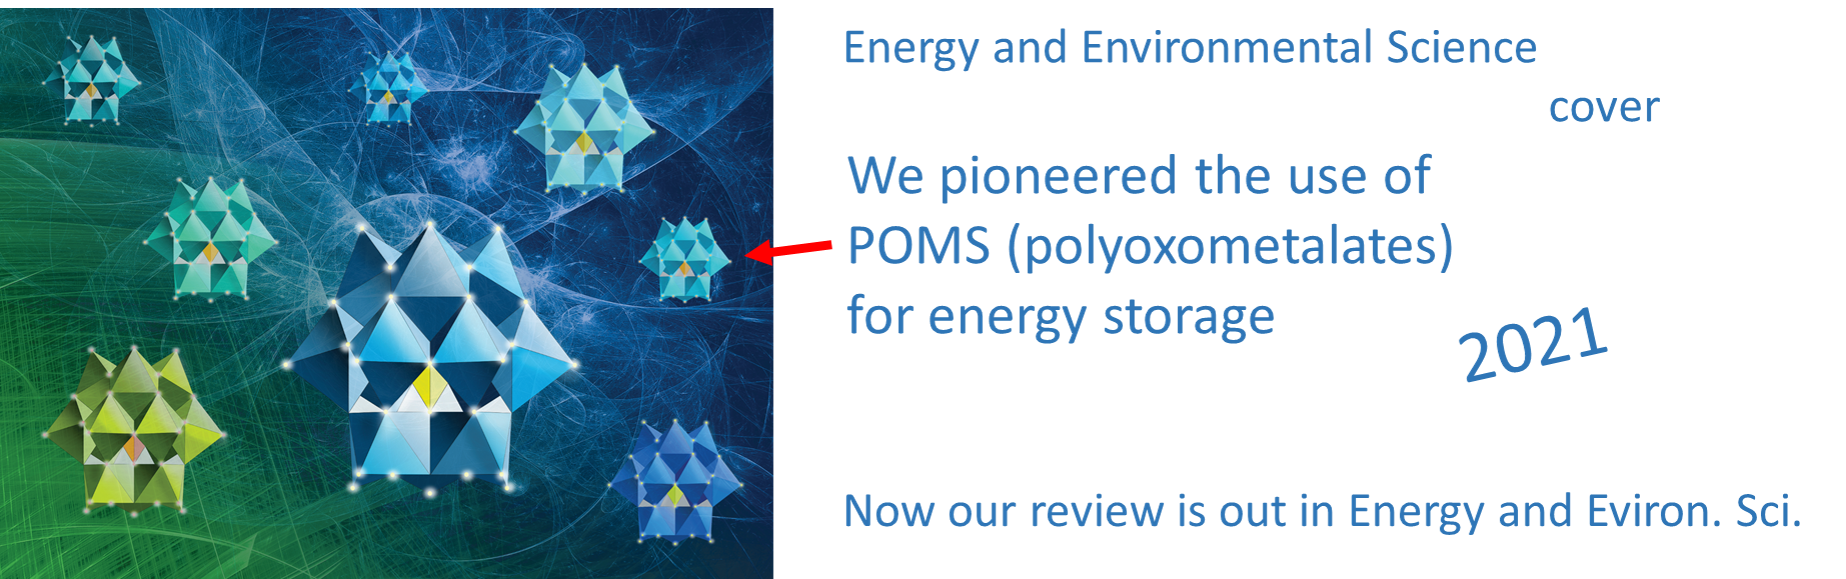 POMs for energy applications. Review and Cover in Energy and Environ. Sci. 2021